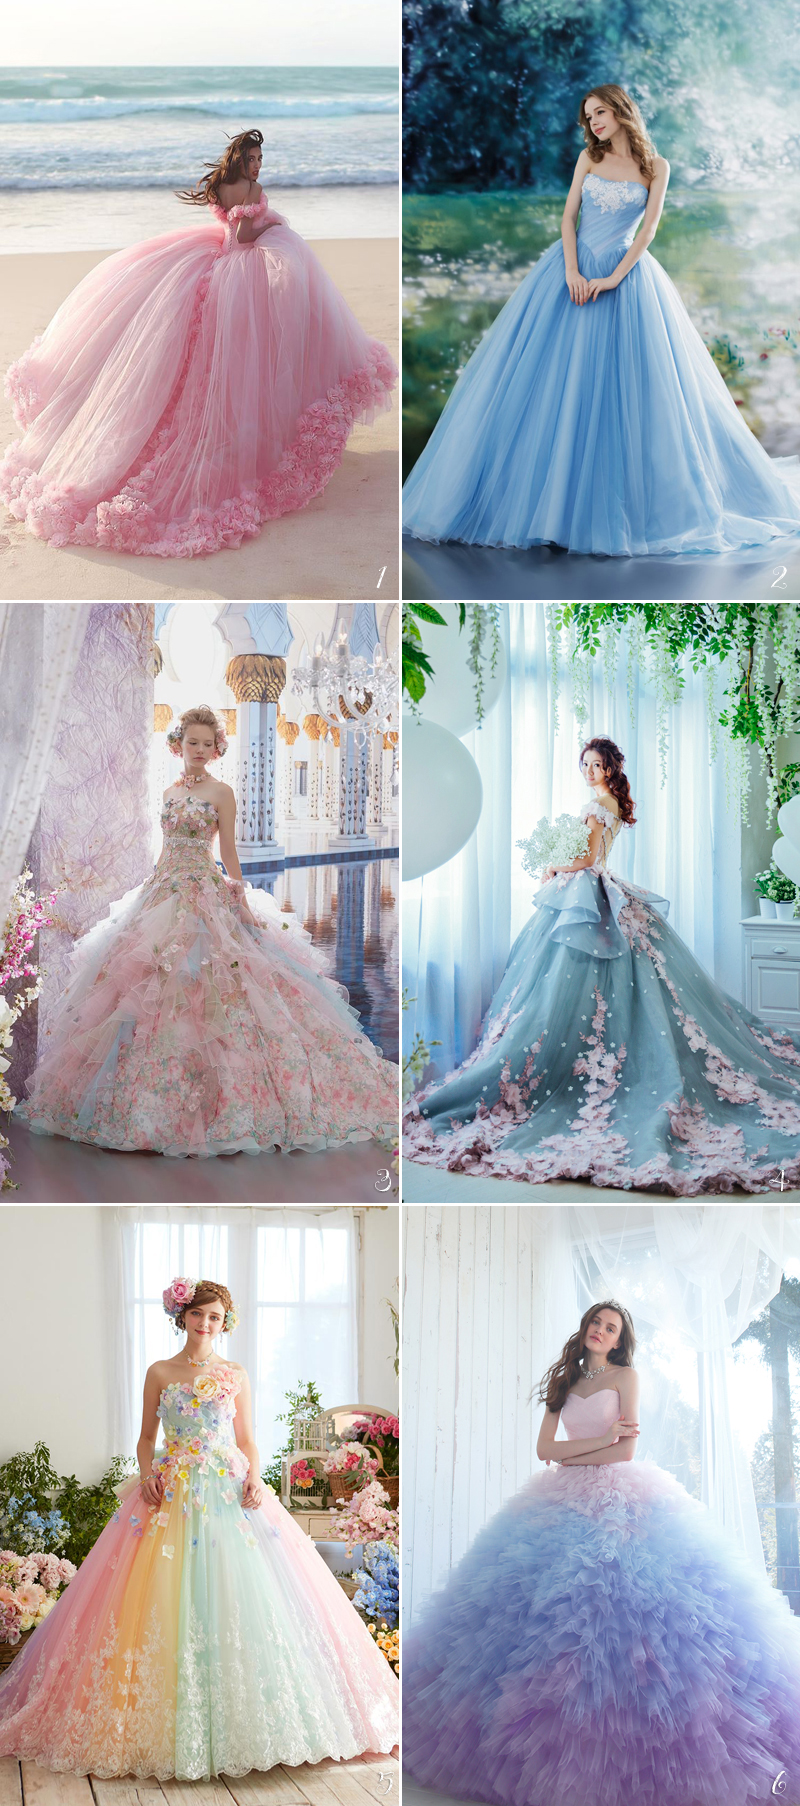 Princess Bridal Gowns With Waist Ball Model Design Makes Beautiful ...